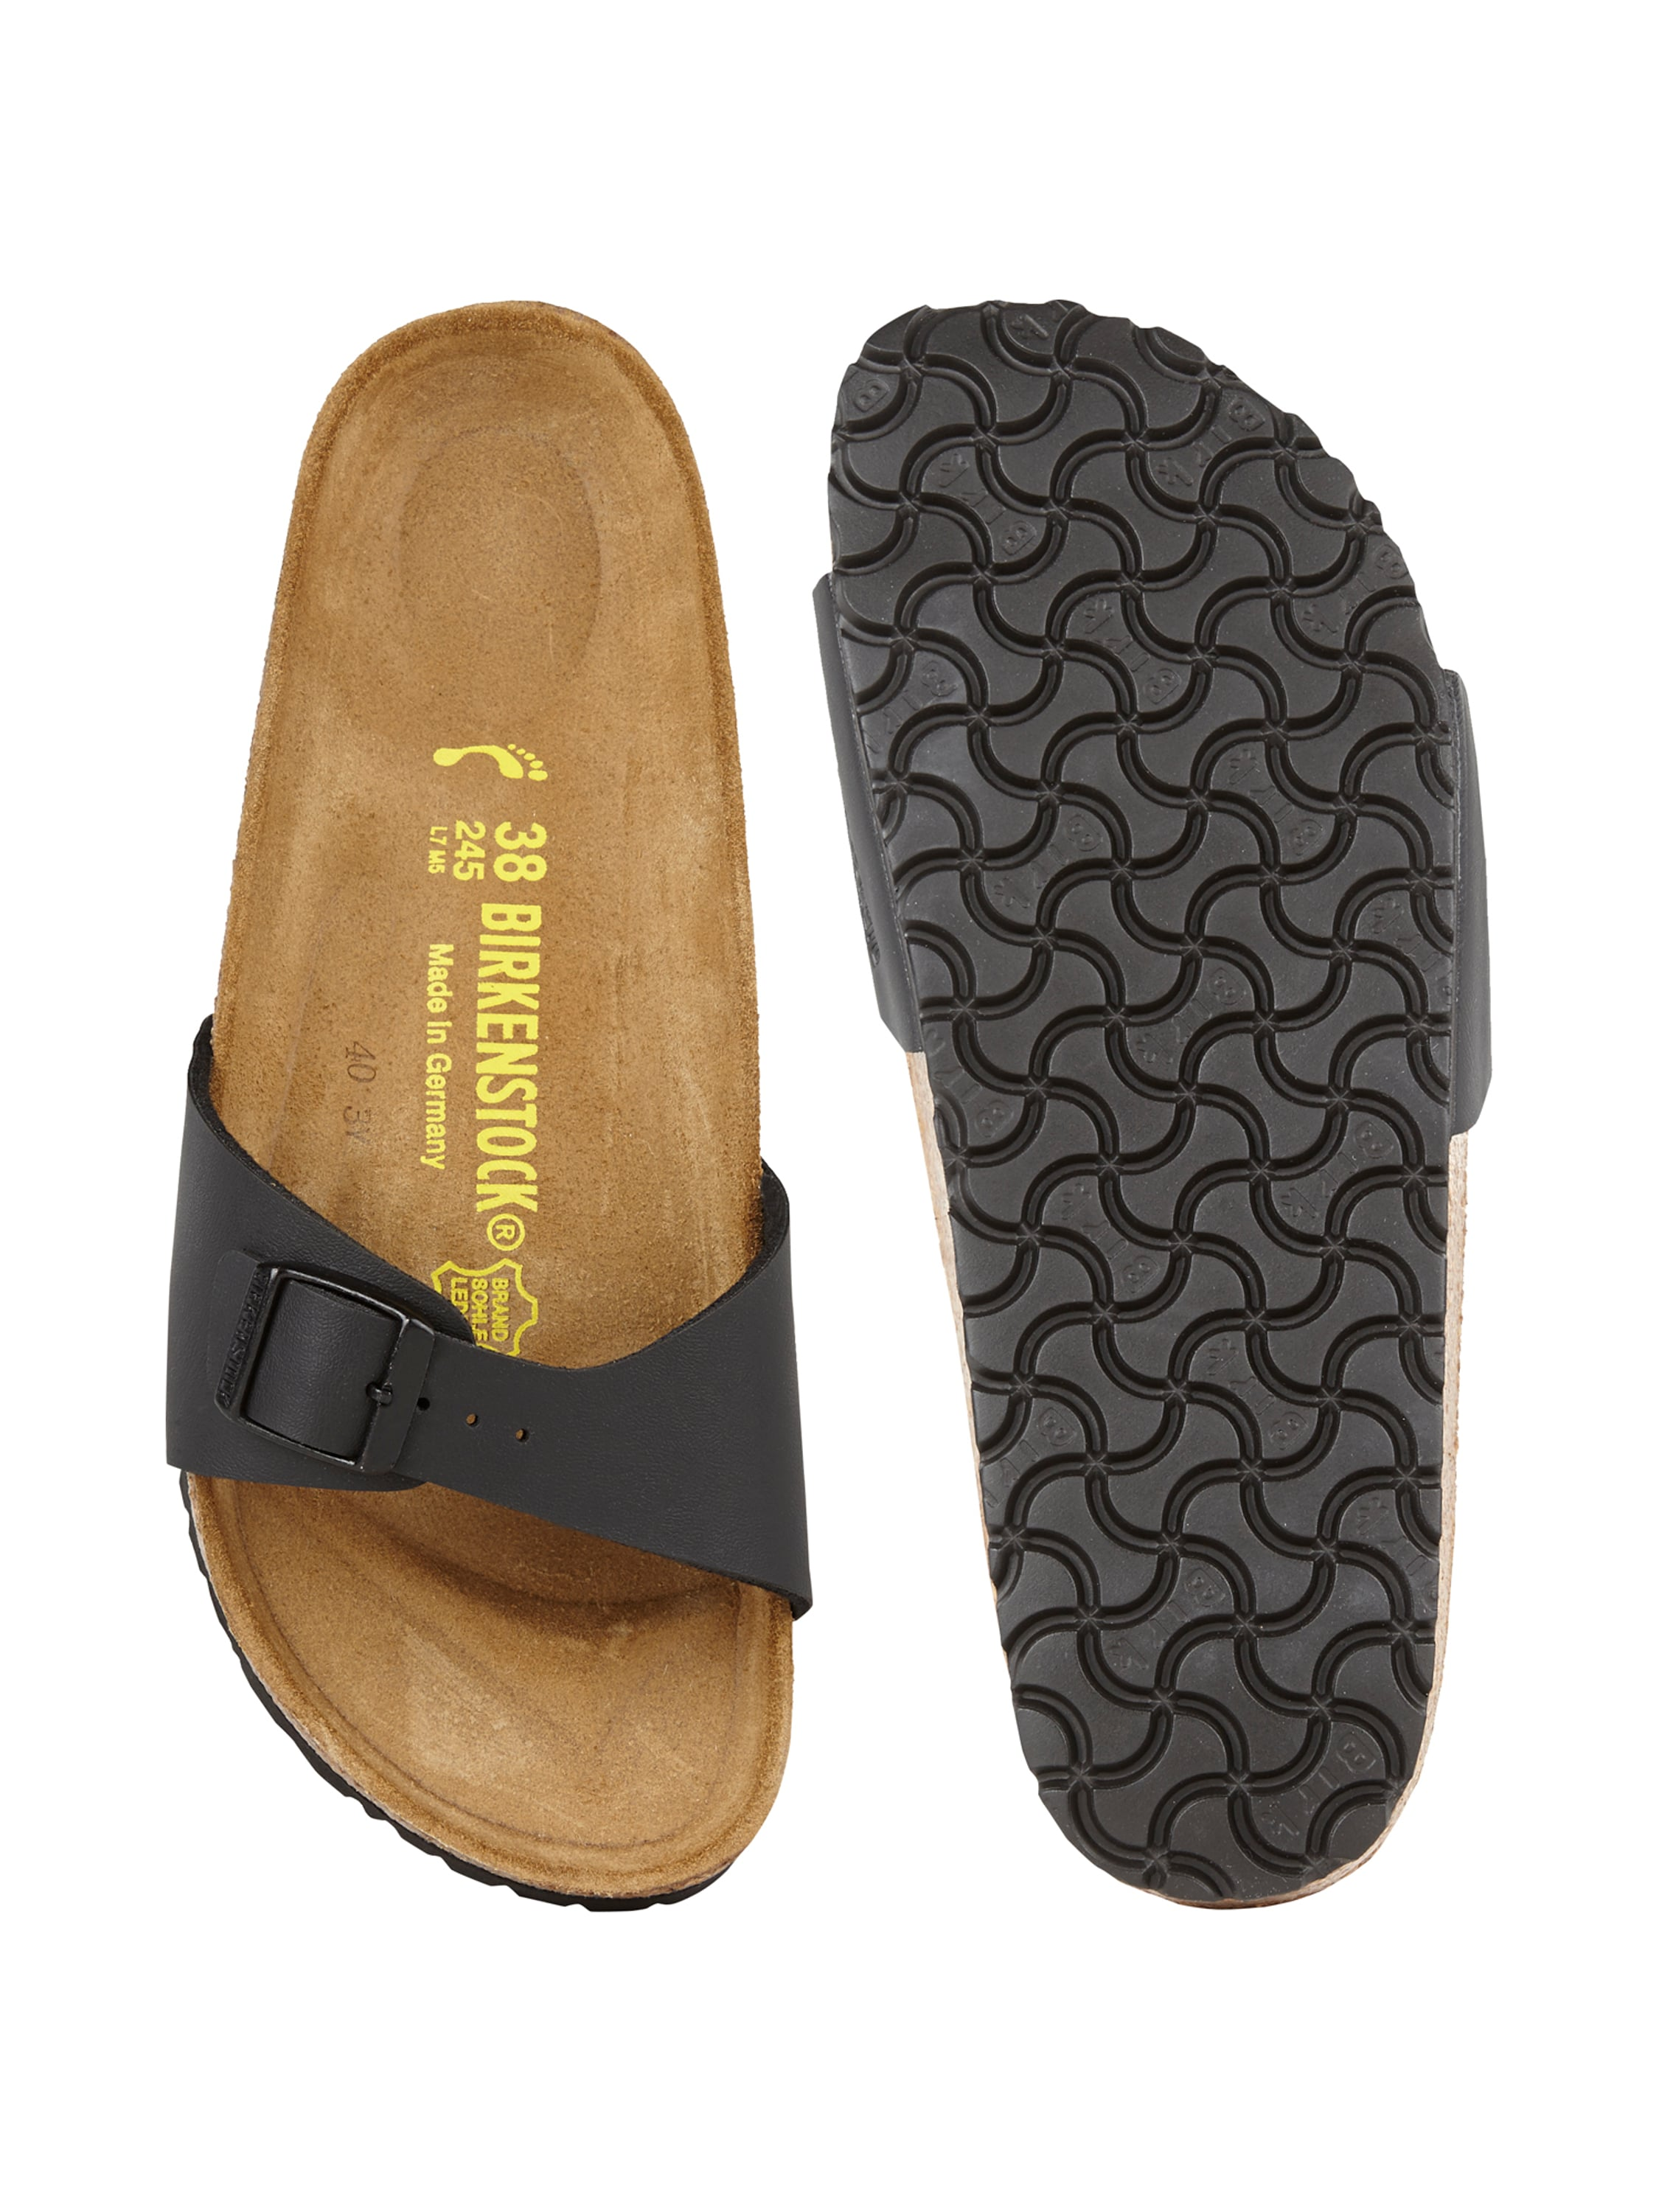 Birkenstock Shoes Online Usa